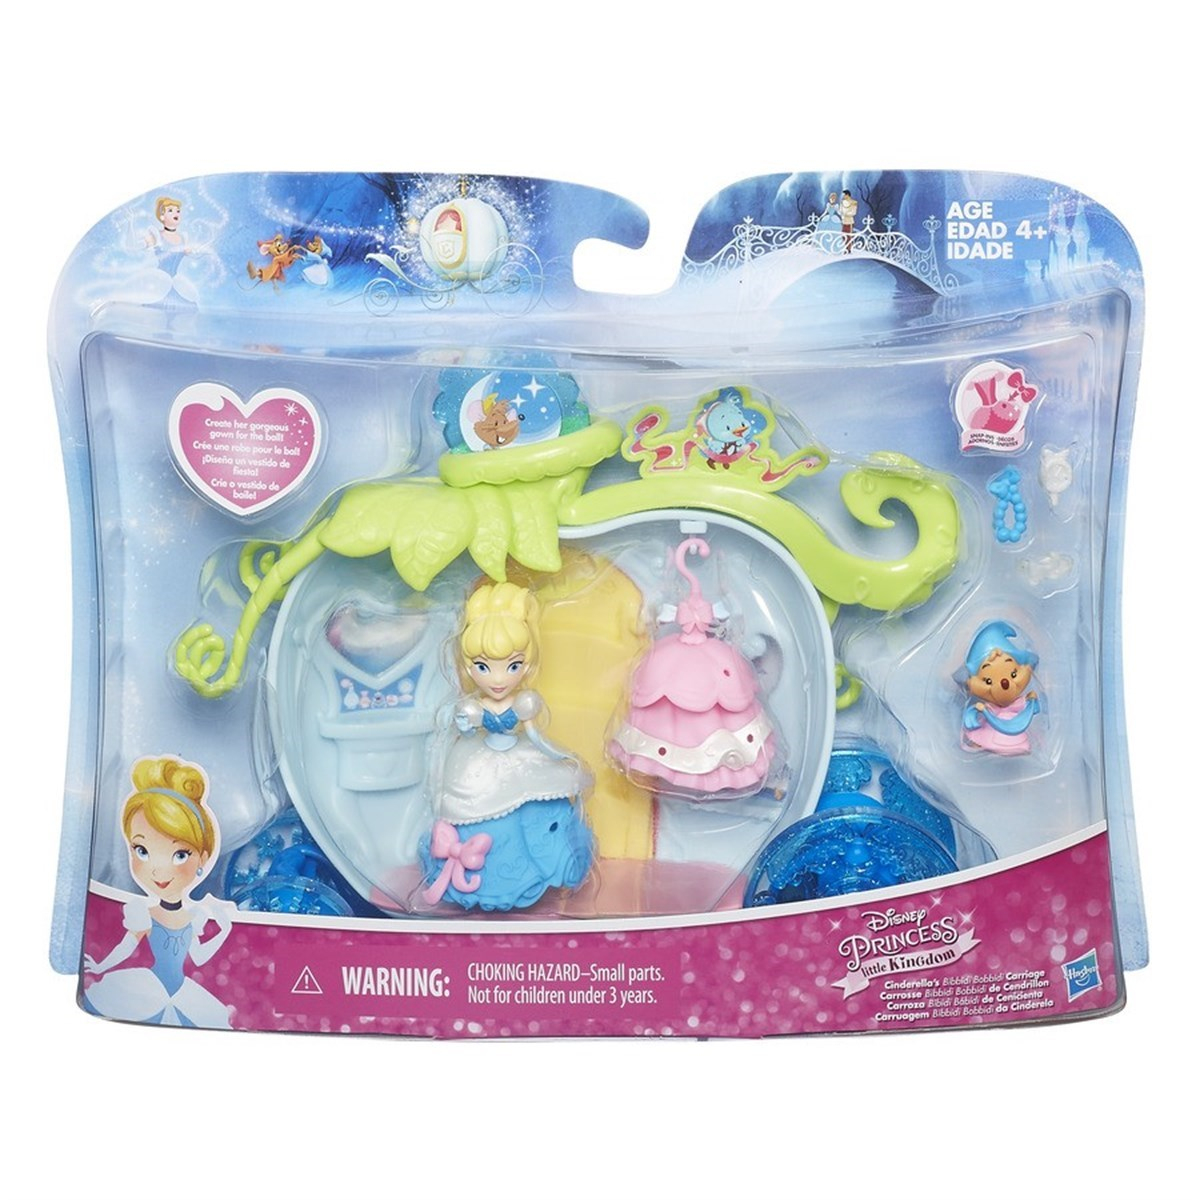 Disney Princess Little Kingdom Balo Elbiseleri B5344 Yeşil (B) intérieur Cendrillon 3 Disney